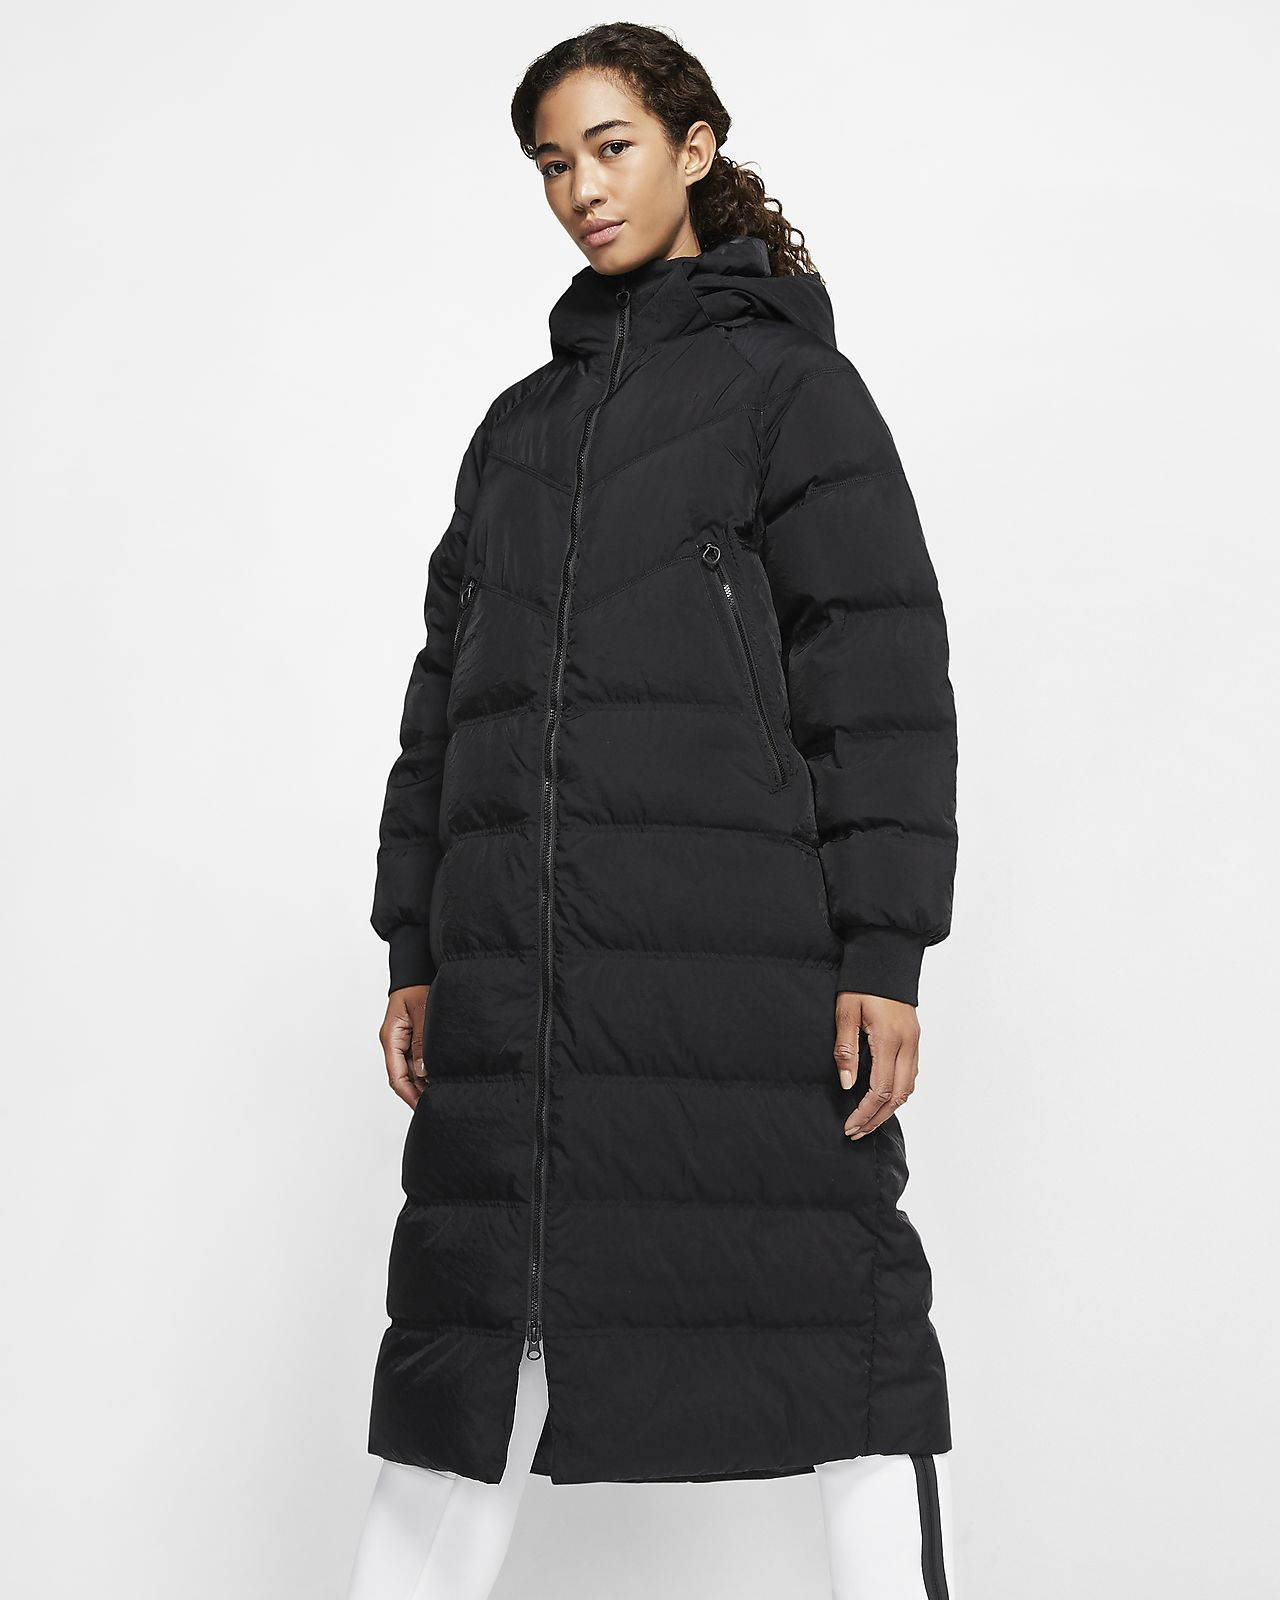 Nike Sportswear Down-Fill City Ready Women's Parka